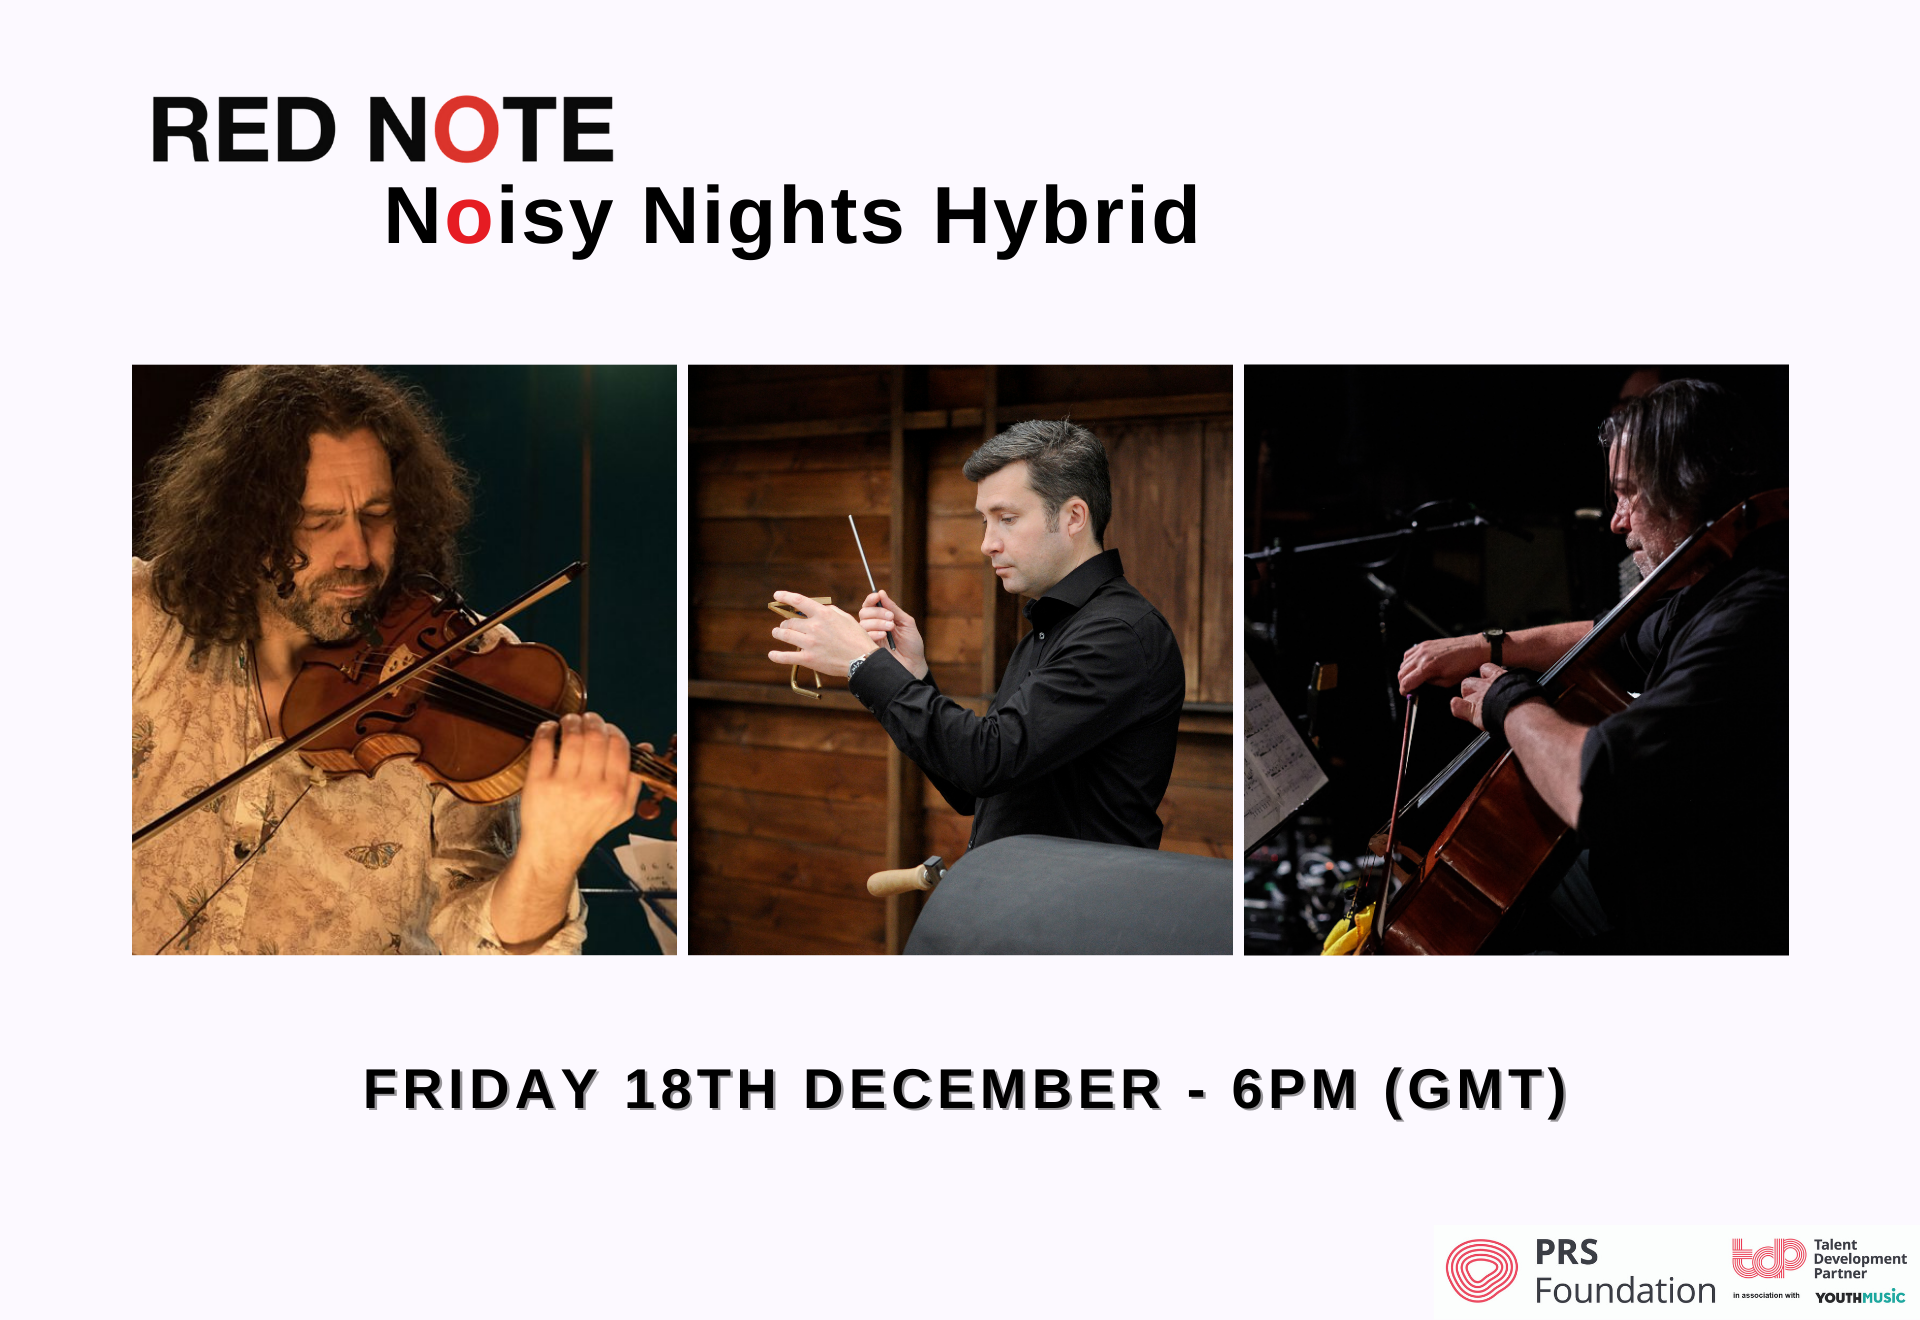 Noisy Nights hybrid features Greg Lawson (violin), Tom Hunter (Marimba) and Robert Irvine (Cello) on Friday 18th December at 6pm